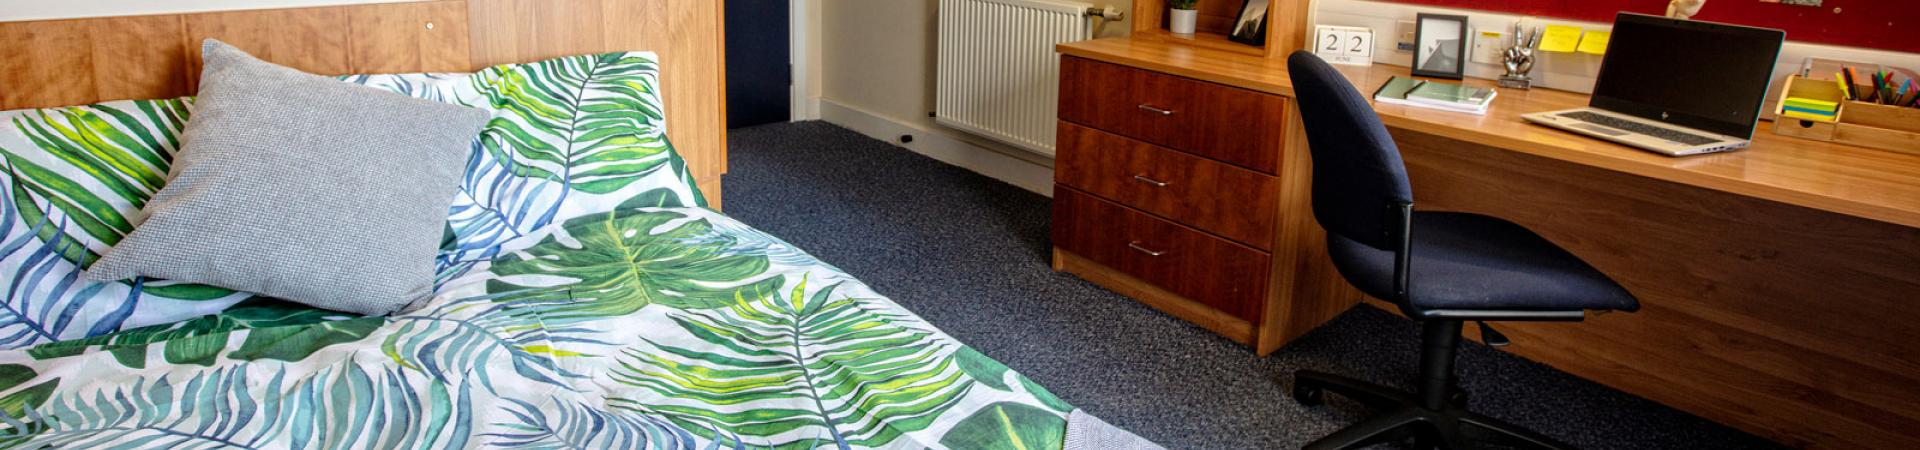 Example bedroom at our Belmont student accommodation in Dundee